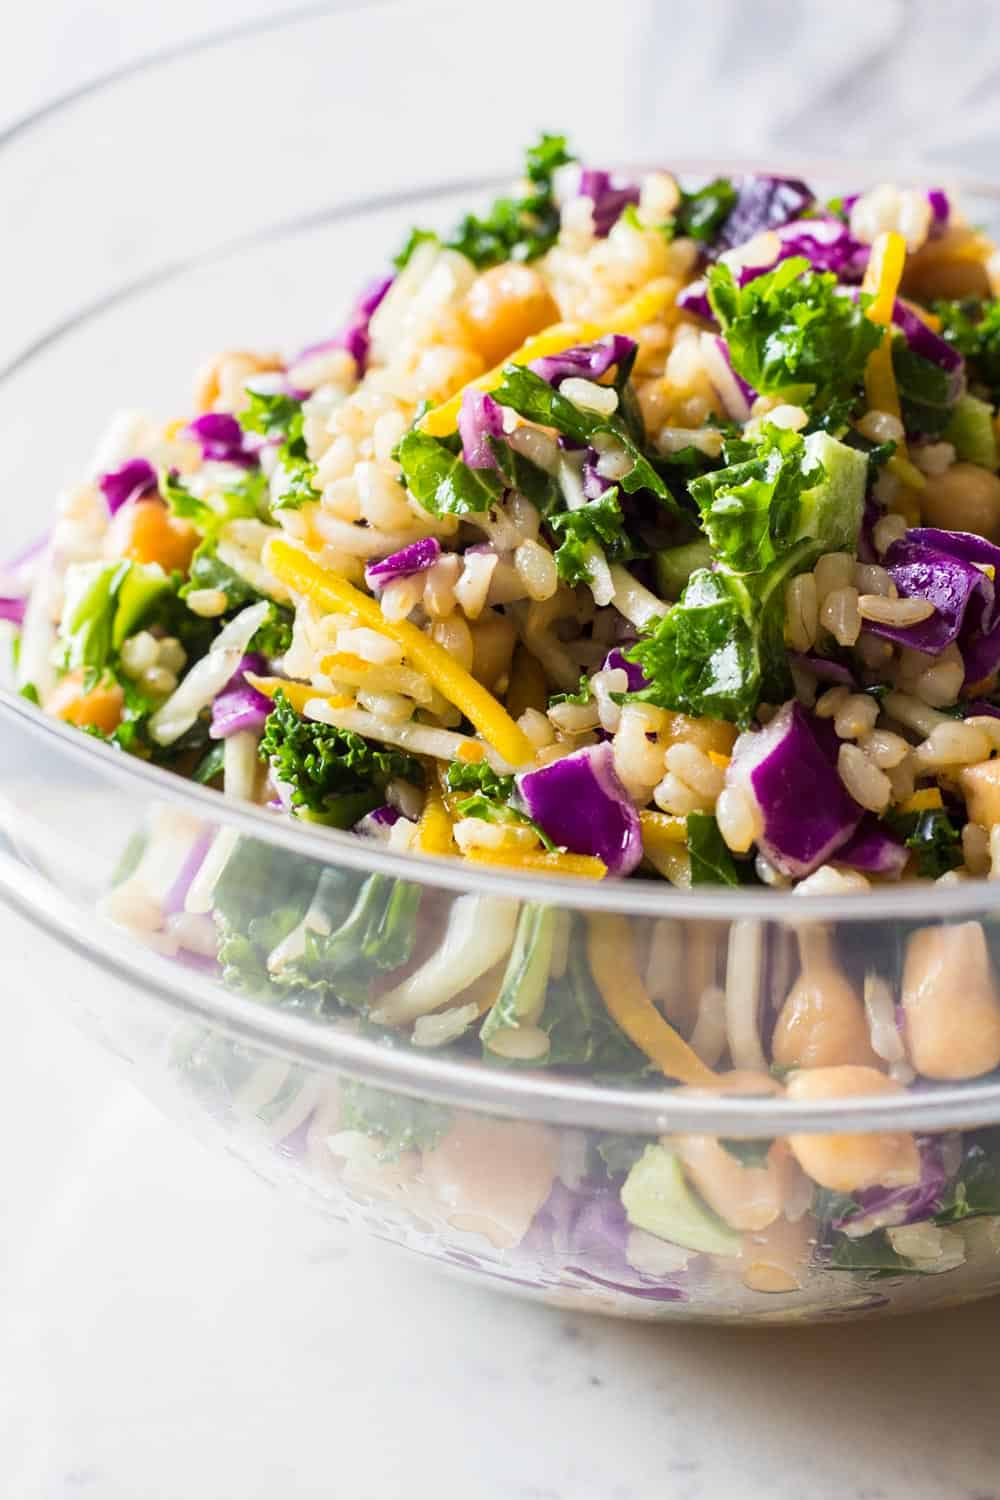 Close-up image of brown rice salad with julienned beets and kale